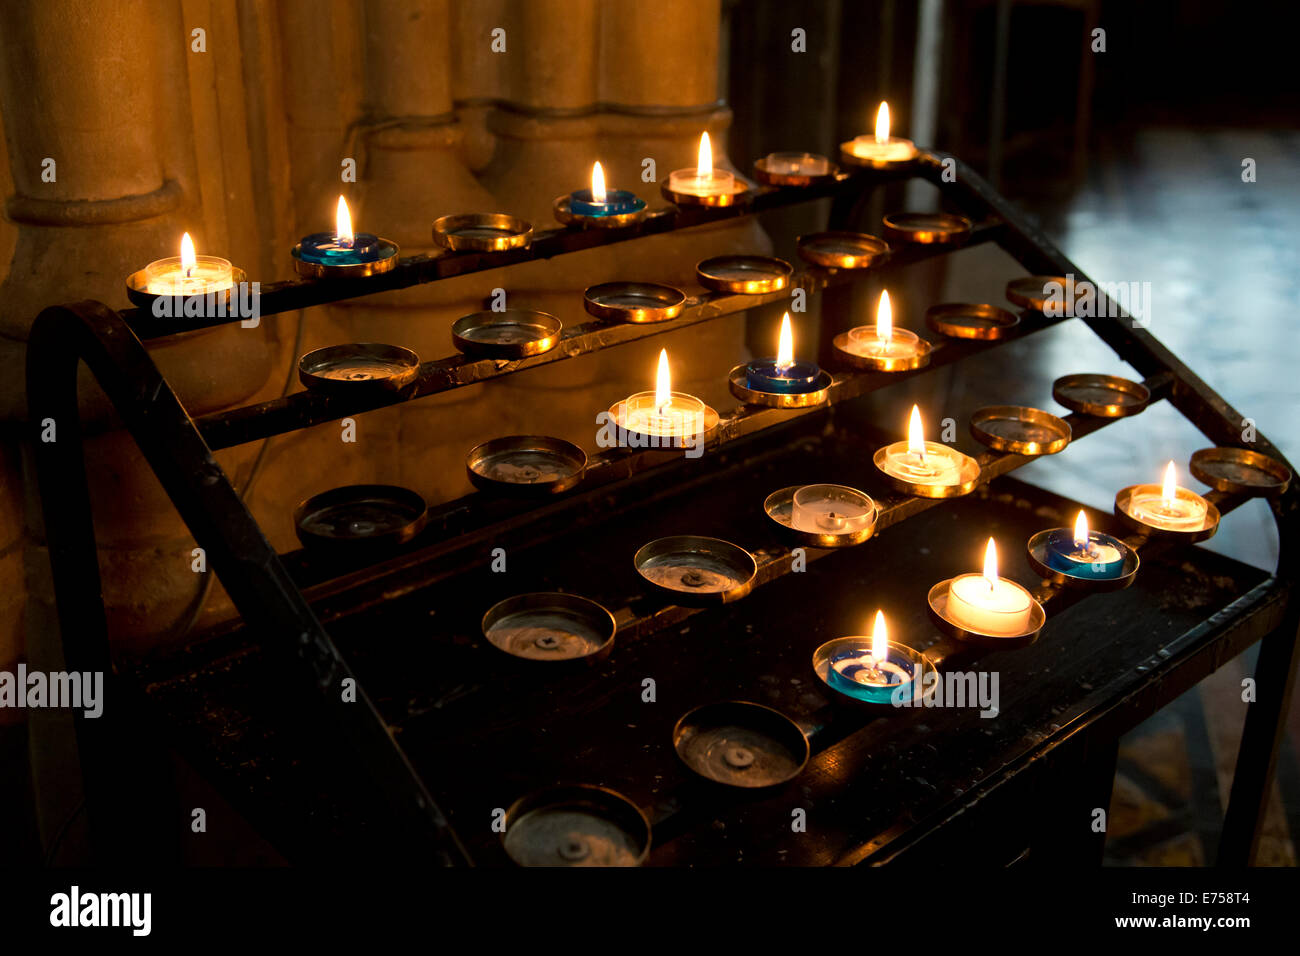 Candle Rack Stock Photos Amp Candle Rack Stock Images Alamy